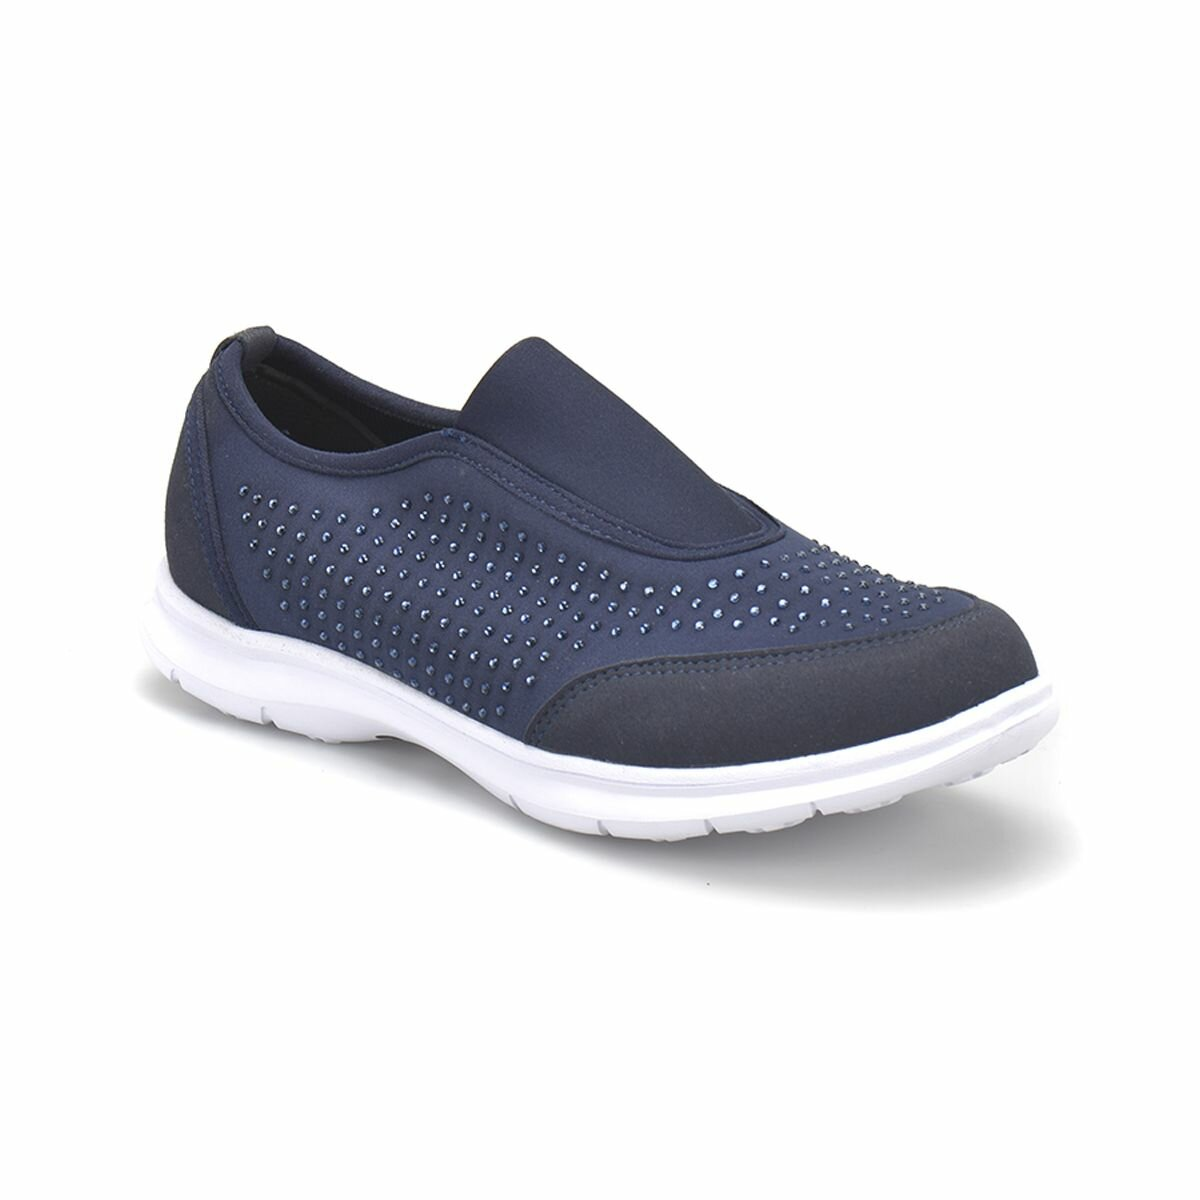 FLO CS18116 Navy Blue Women 'S Slip On Shoes BUTIGO